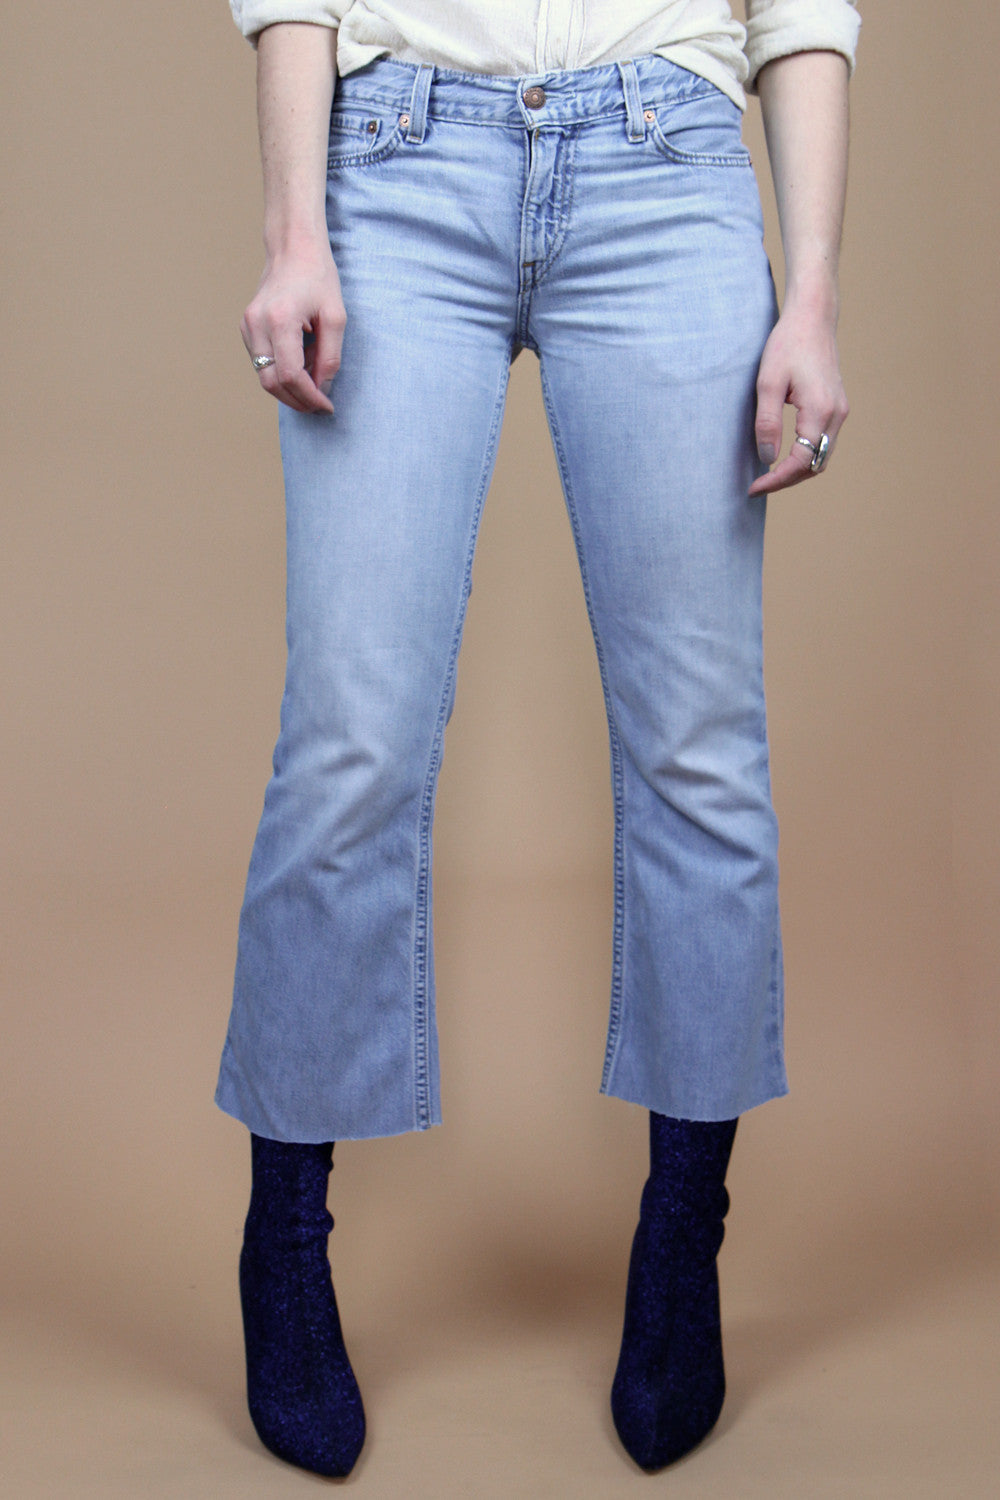 Levi's 529 Cropped Flare 27X25